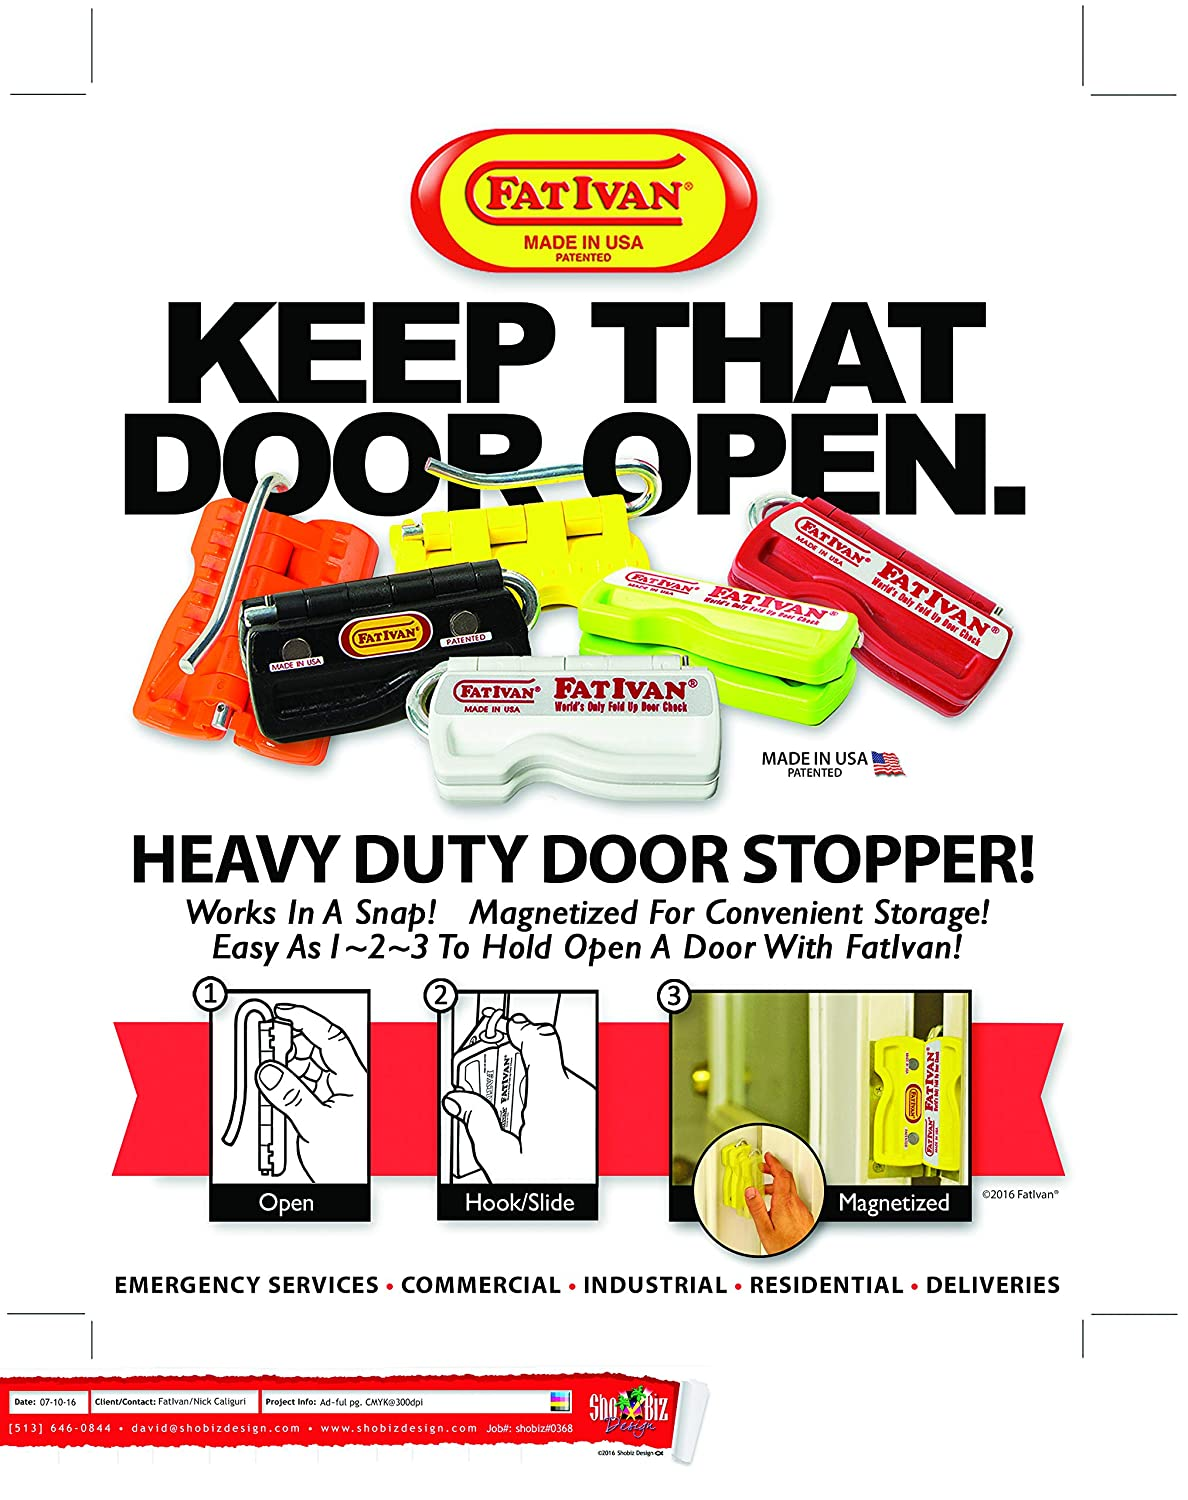 Original FatIvan Portable Fold Up or Homeowners Yellow Magnetic Paramedics Door Chock Wedge Stoppers for Firefighters